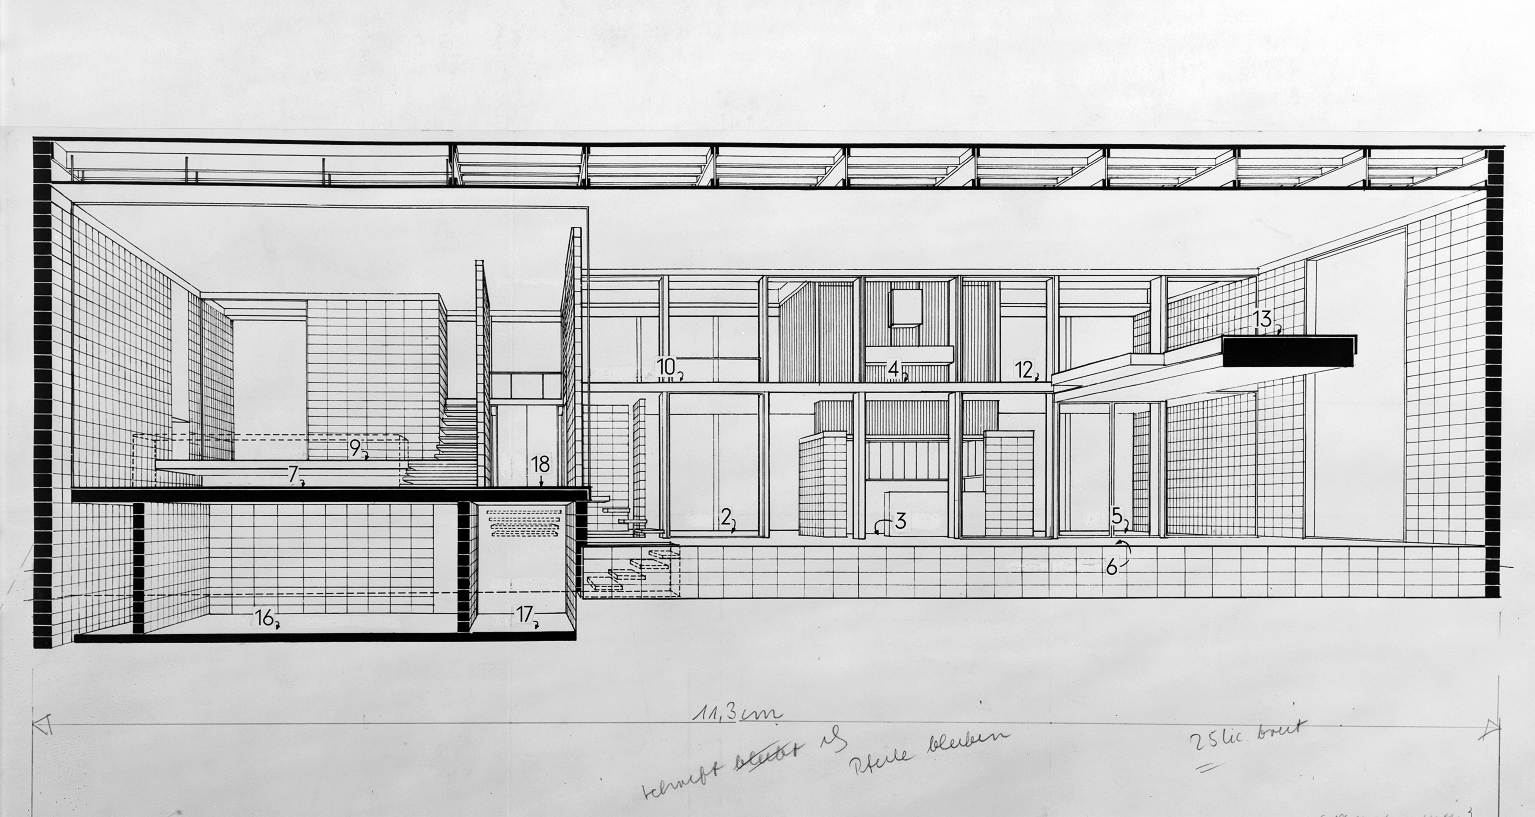 Deering residence, Casey Key, Florida. Section Perspective Rendering.